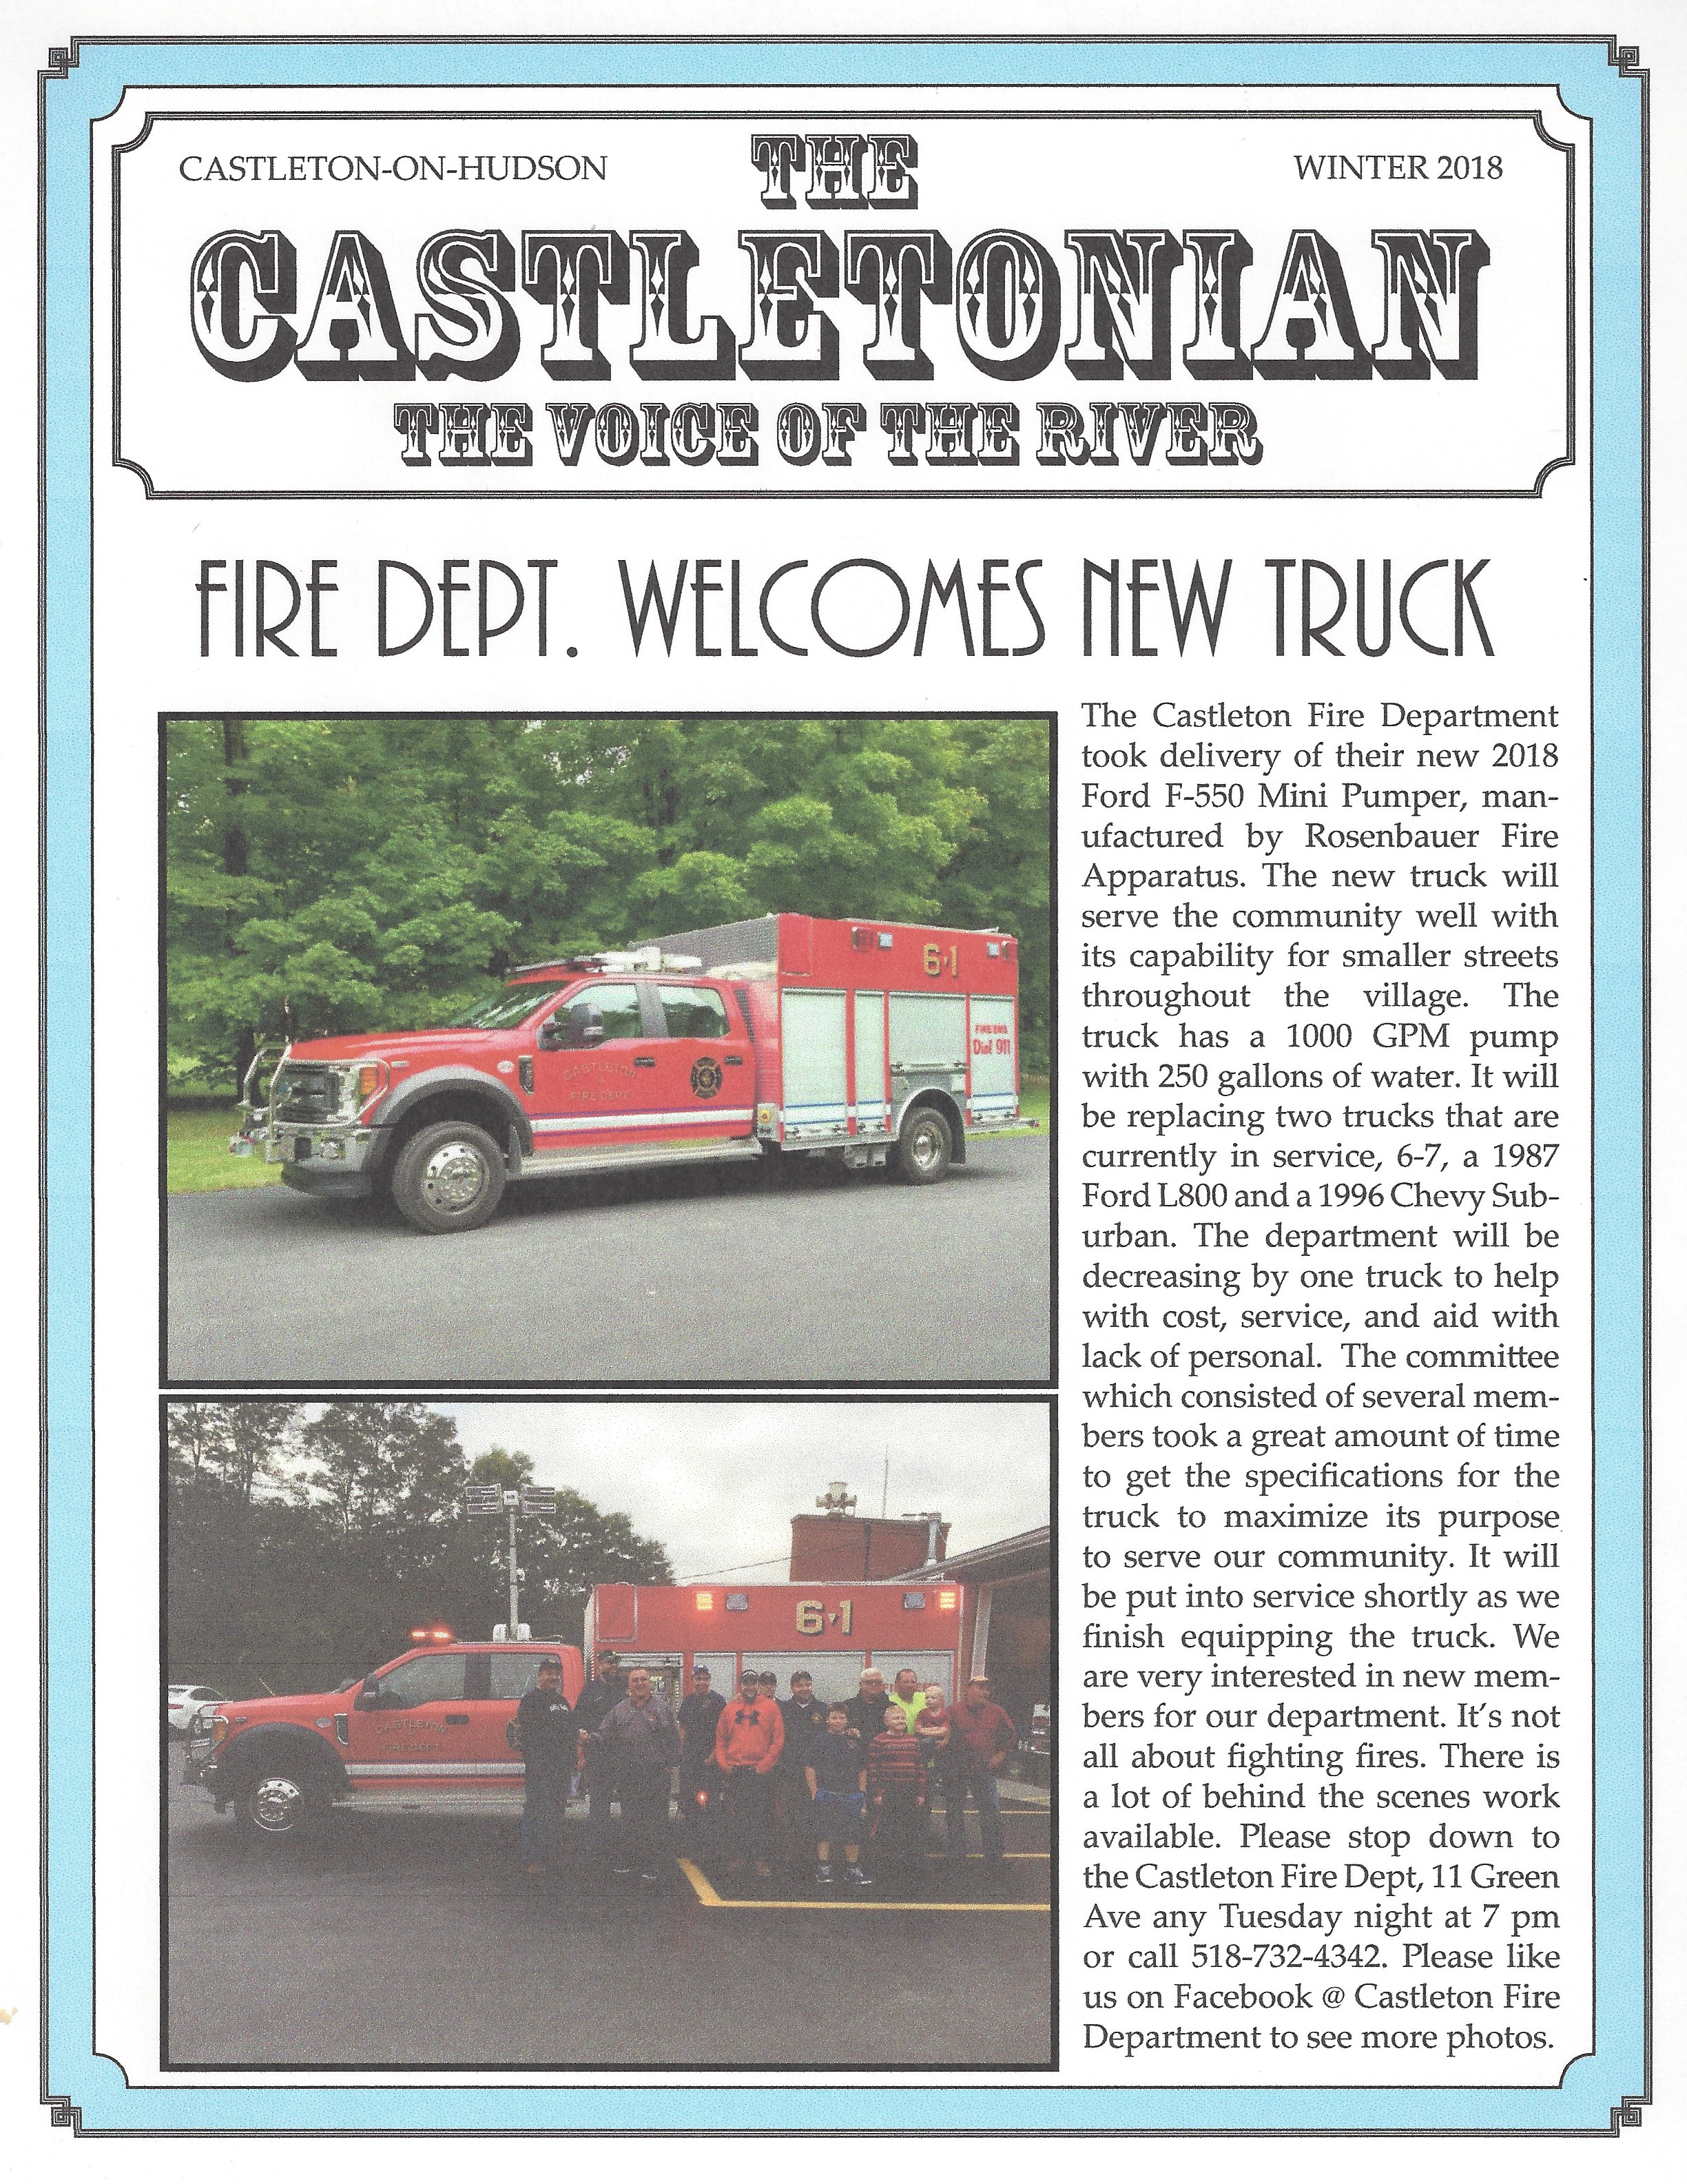 The Castletonian, Winter 2018